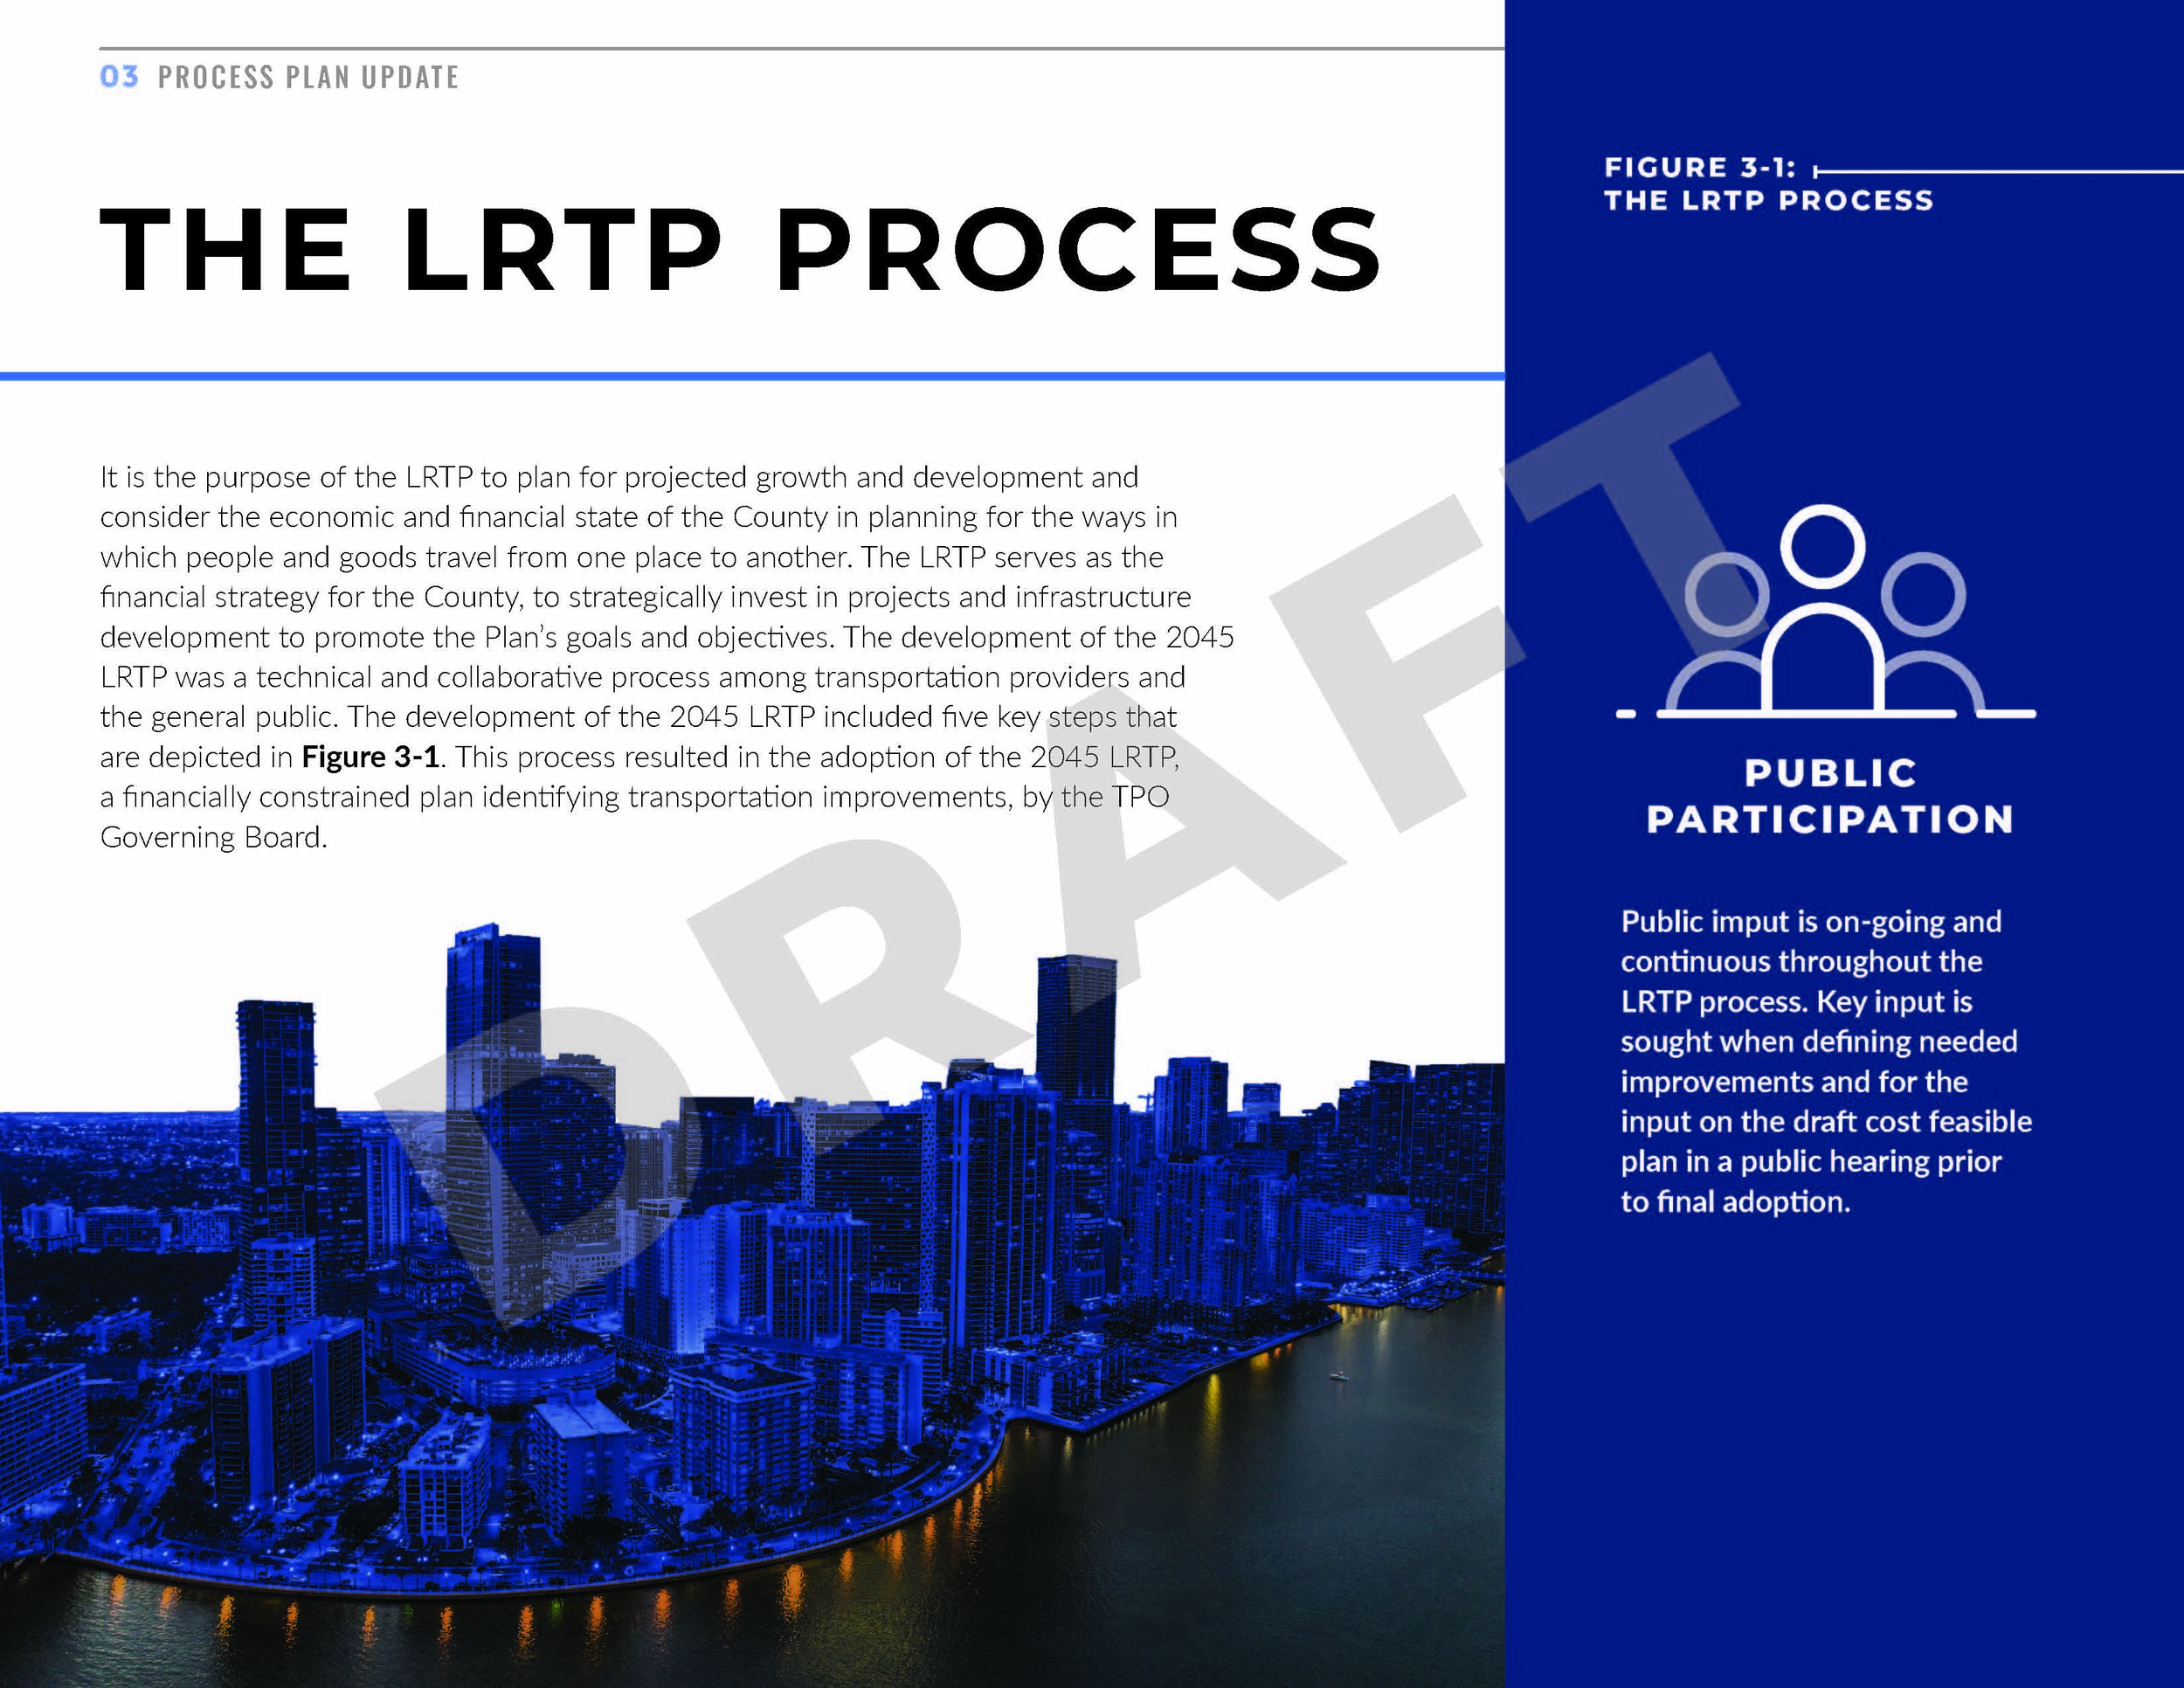 LRTP_ALLCHAPTERS_091019_130pm_Page_060.jpg